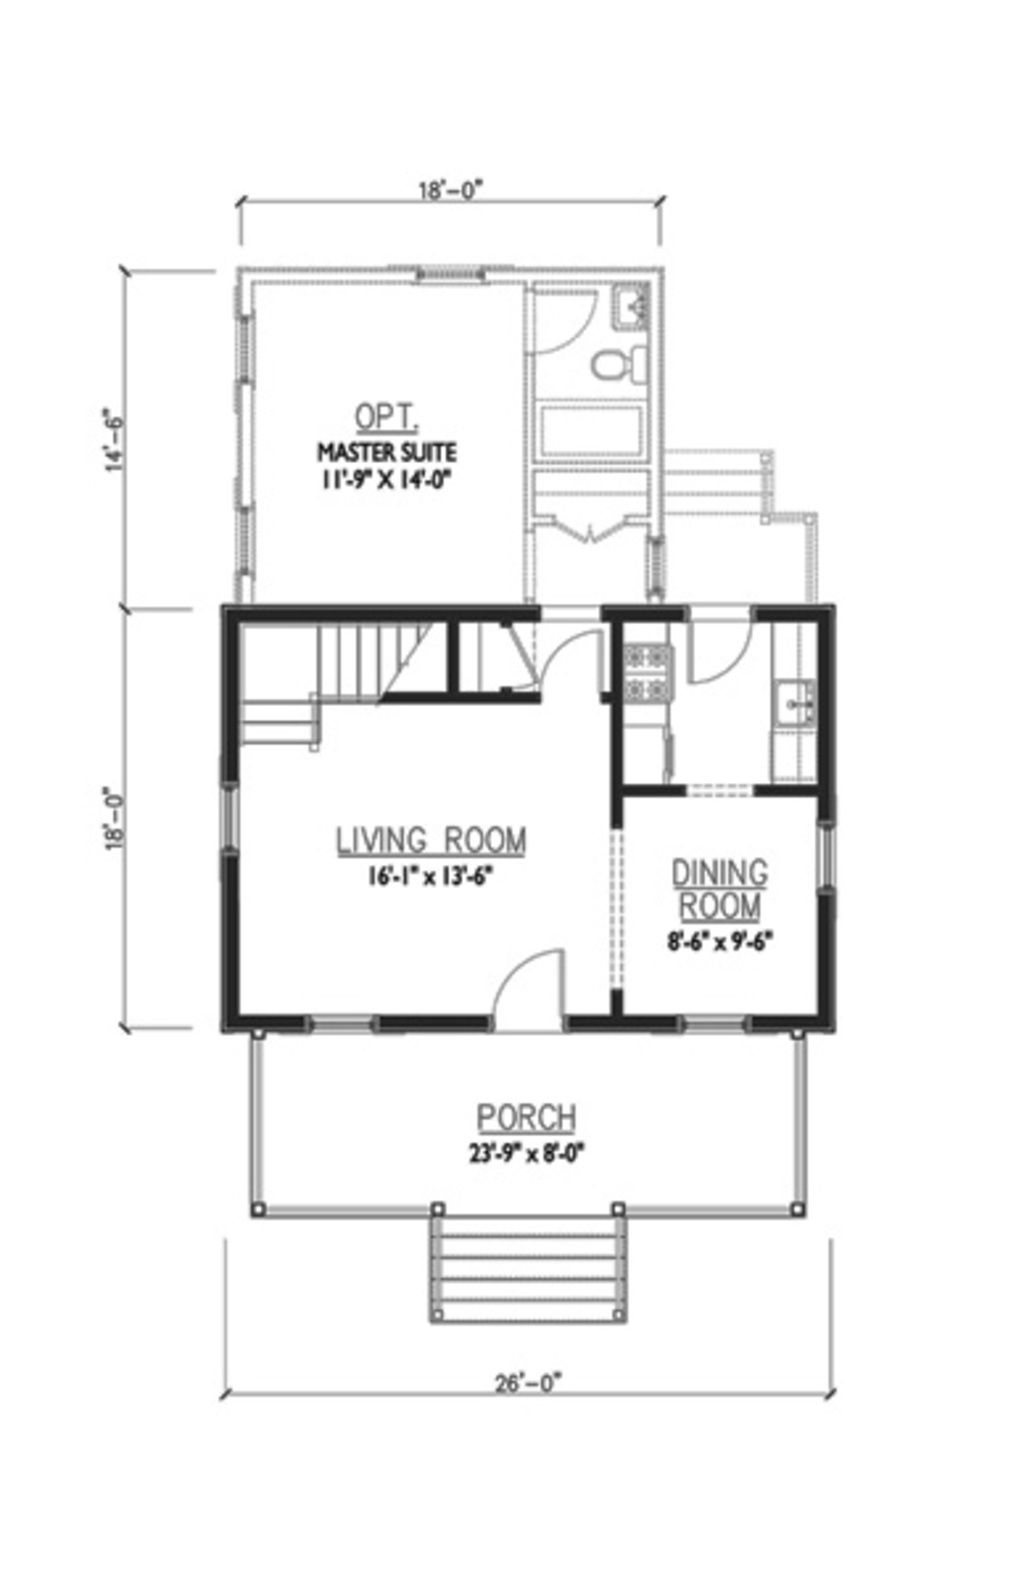 vacation friendly cottage house plan 840 sq ft 1 bed 1 bath vacation friendly cottage house plan 840 sq ft 1 bed 1 bath walkout basement would make this perfect houseplans pinterest walkout basement